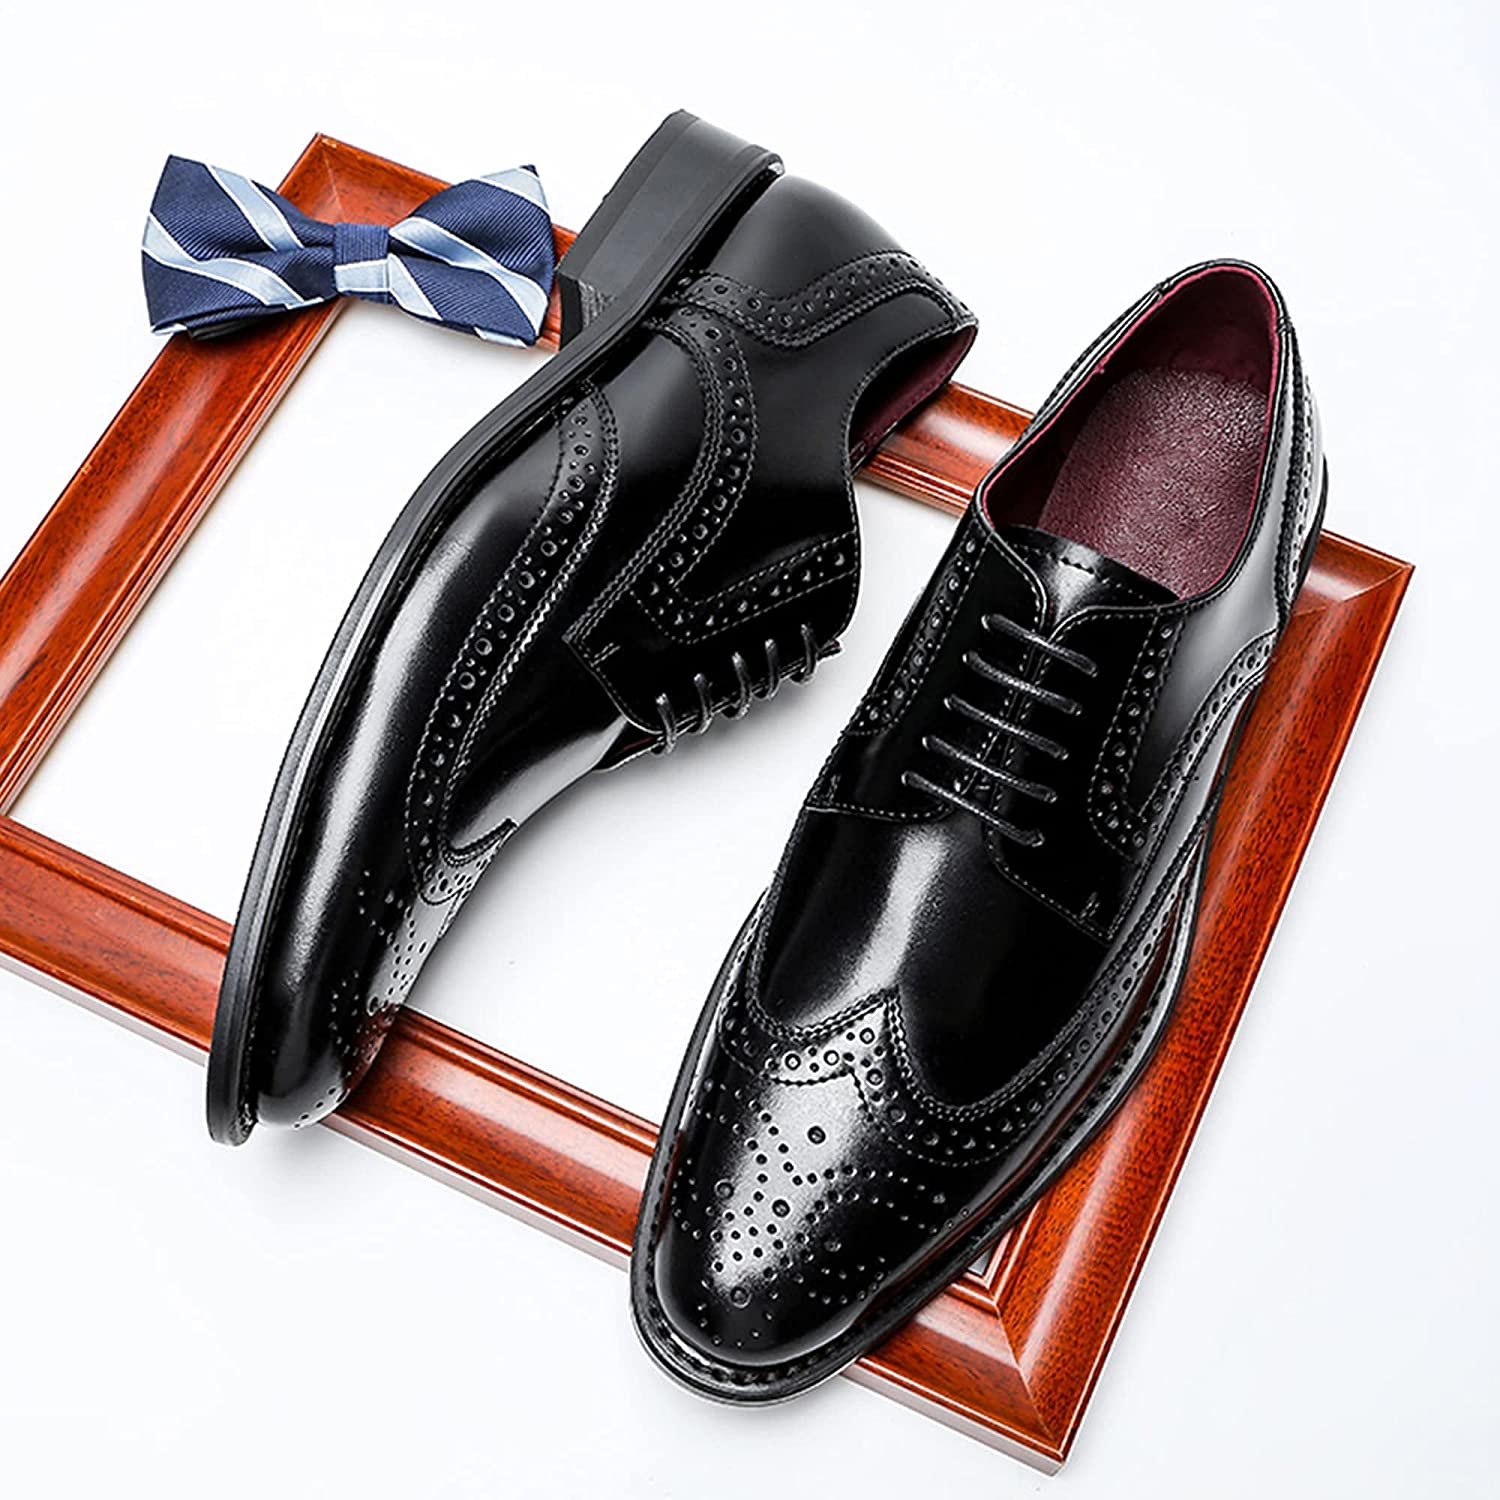 Oxford Shoes Business Shoes Men's Genuine Leather Lace-up Shoes Straight Tip Commuting Anti-Slip Breathable